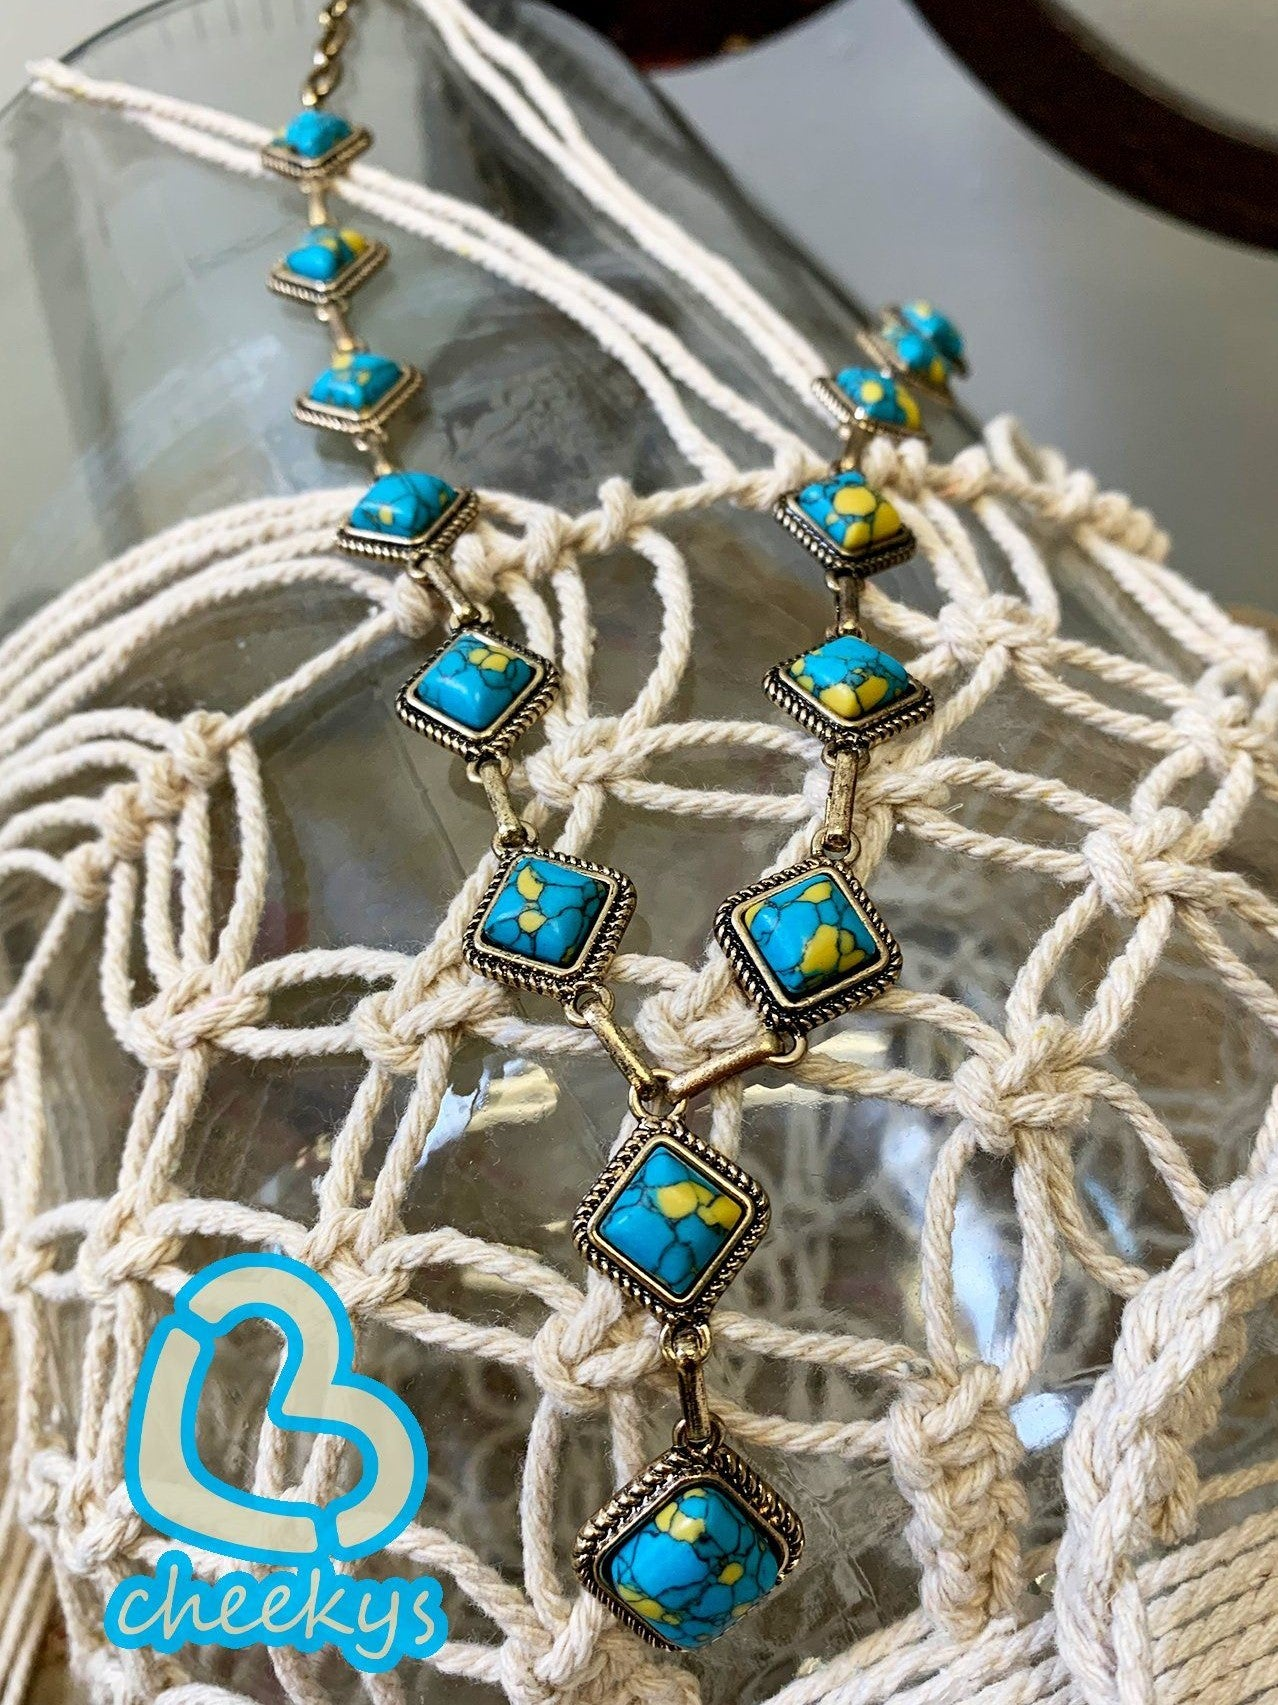 Spurling's Turquoise & Mustard Stone Necklace